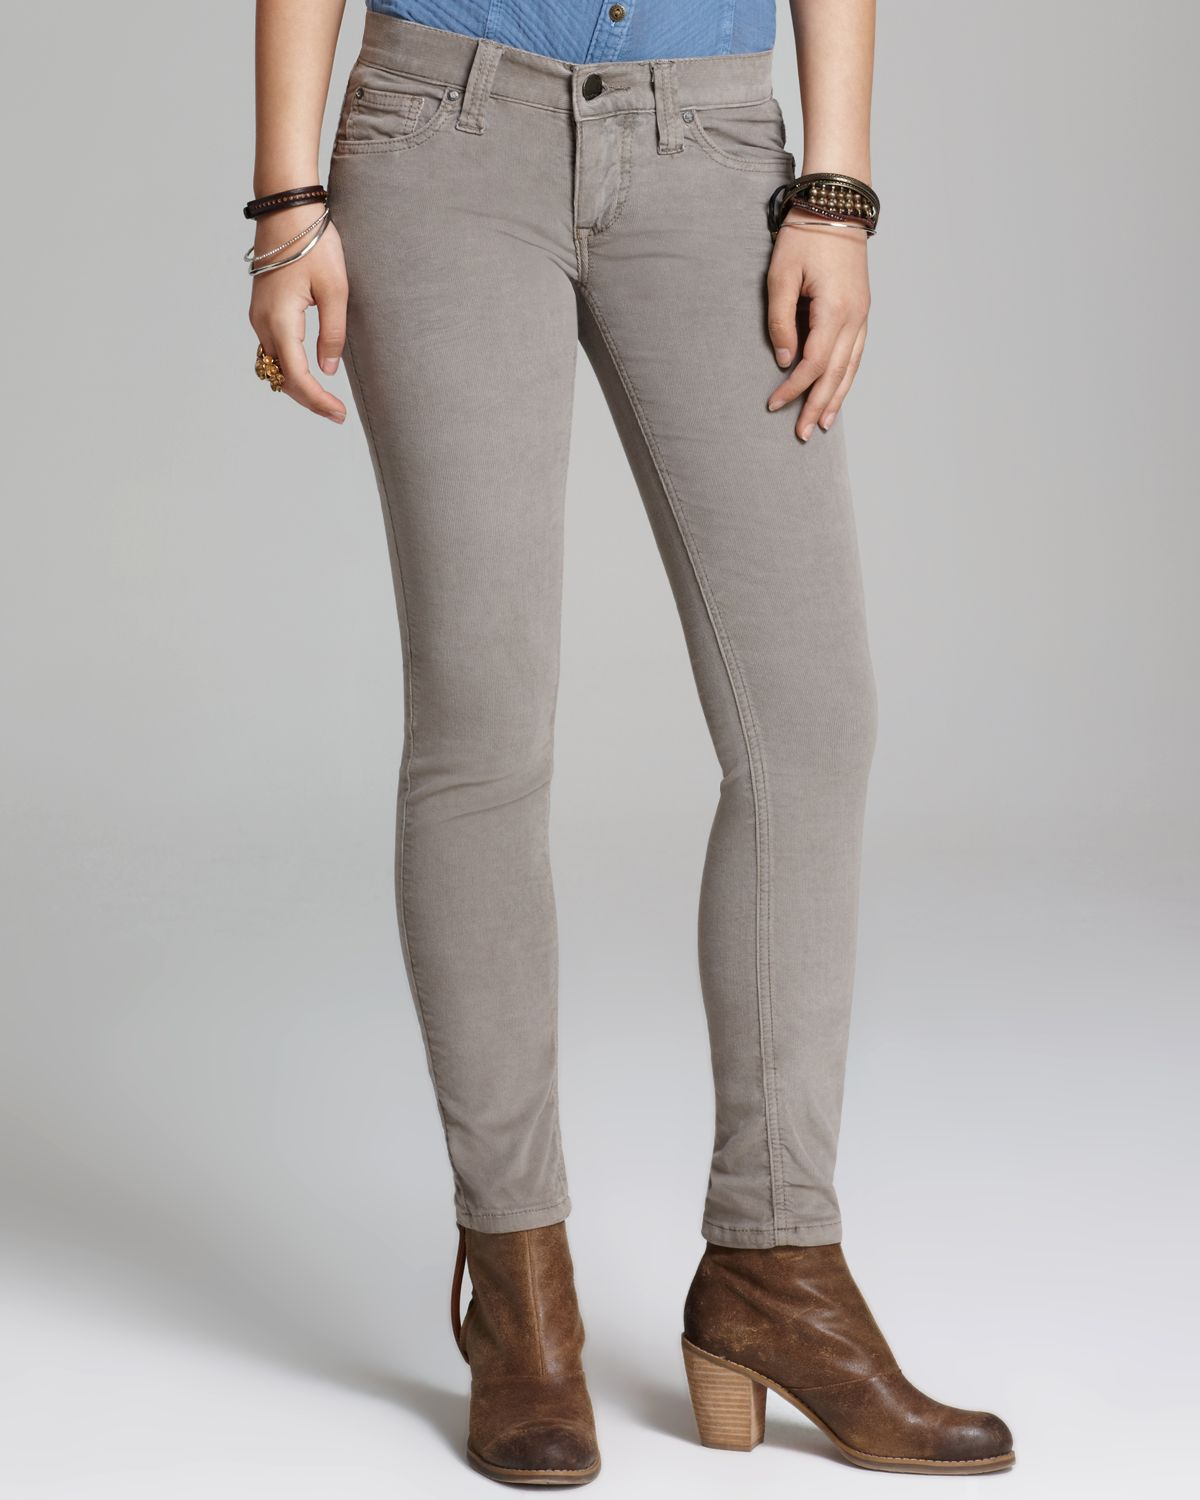 There's nothing better than a perfectly fitting pair of classic, blue jeans. Enter NYDJ's Barbara Bootcut, which comes in Premium Denim in a rich, azure wash that gives you a vintage, all-American vibe, without sacrificing the innovative, shaping properties of NYDJ's signature Lift Tuck Technology.